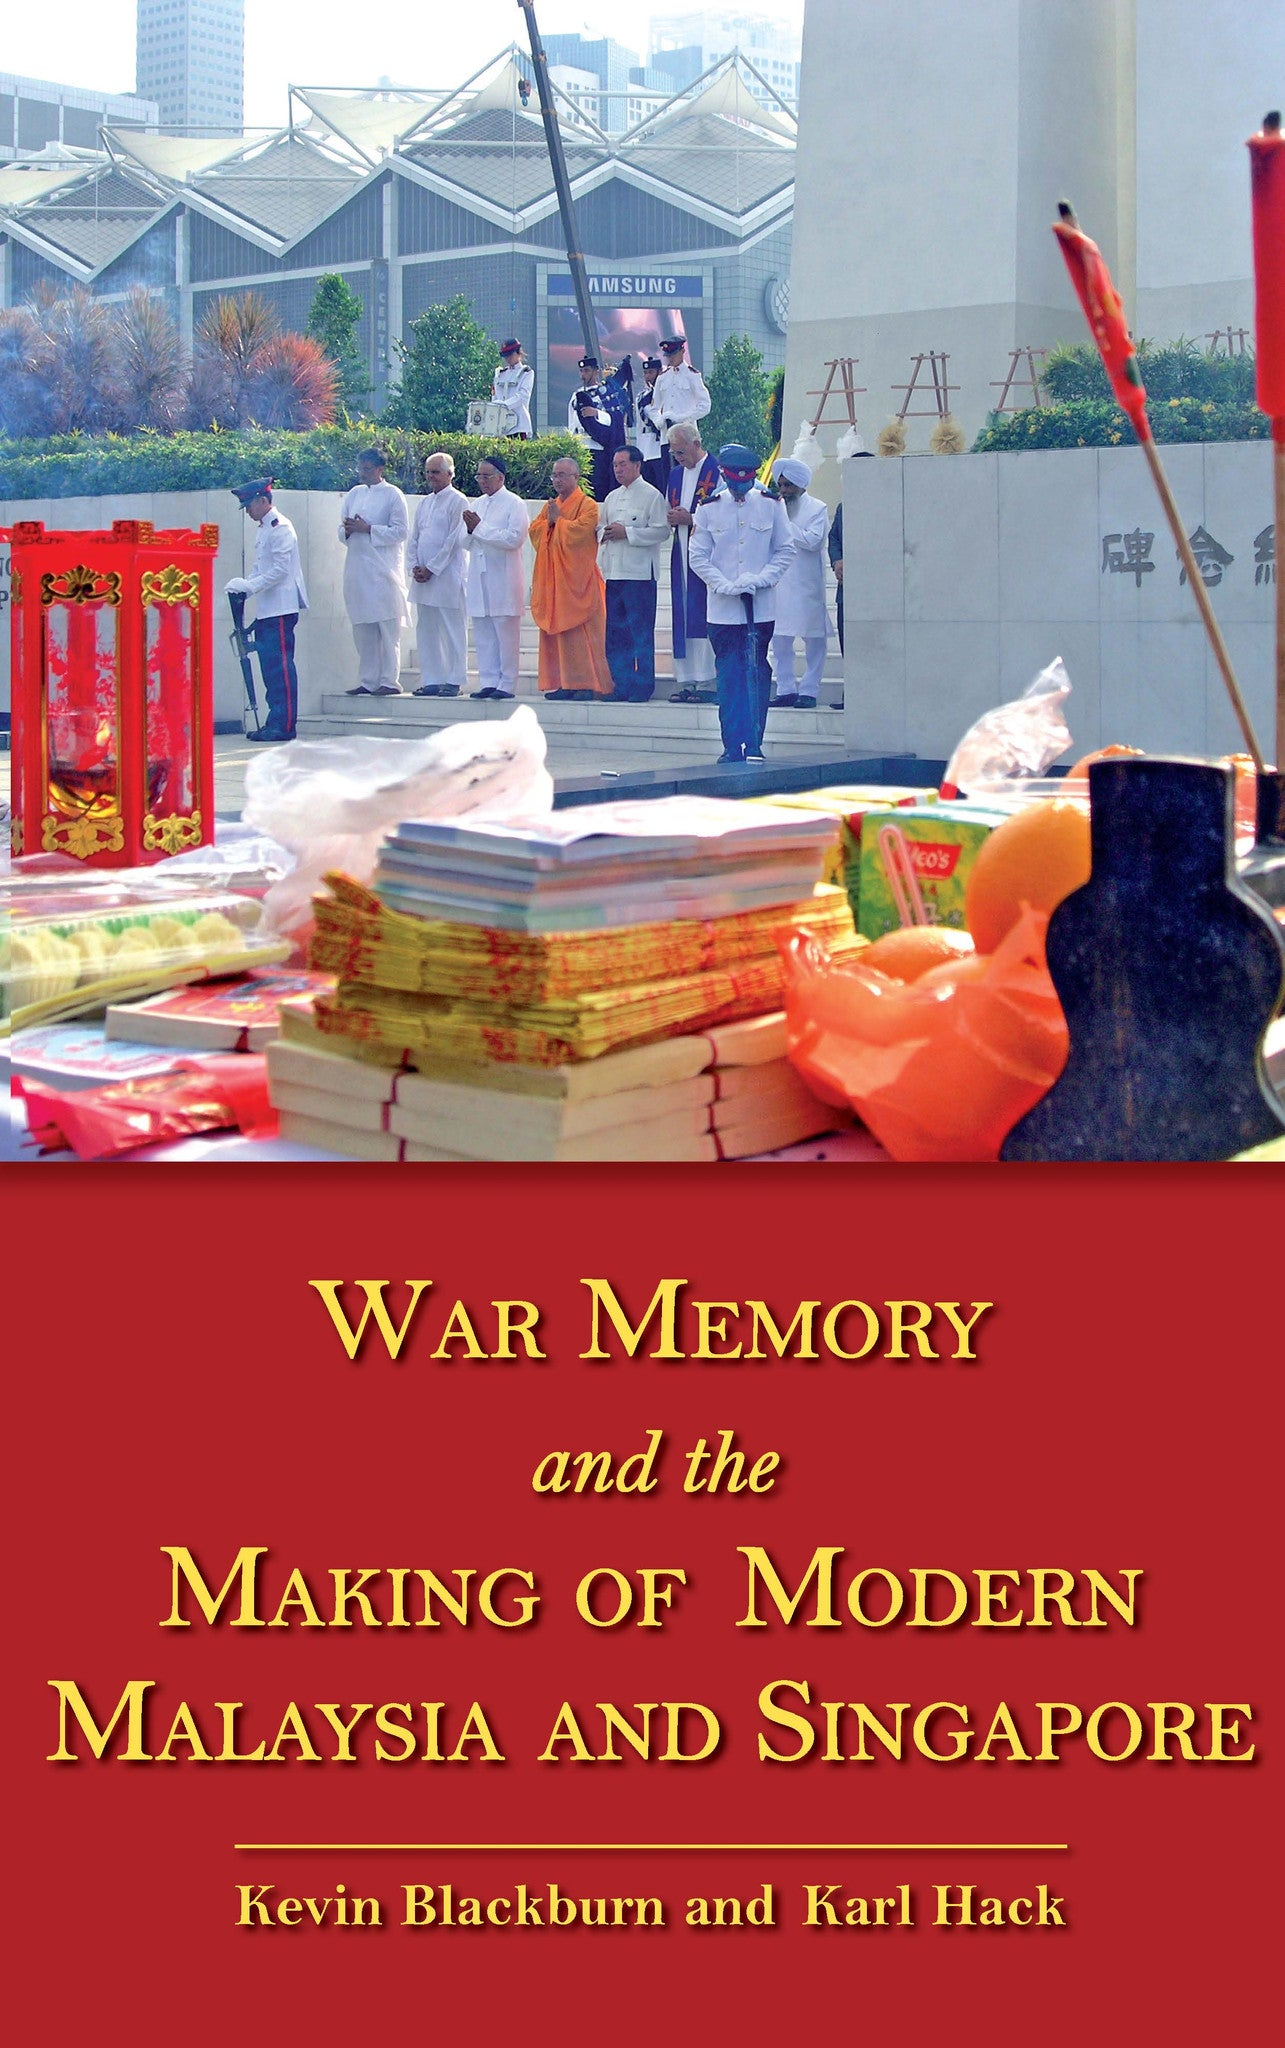 Image result for Book : War Memory and the Making of Modern Malaysia and Singapore